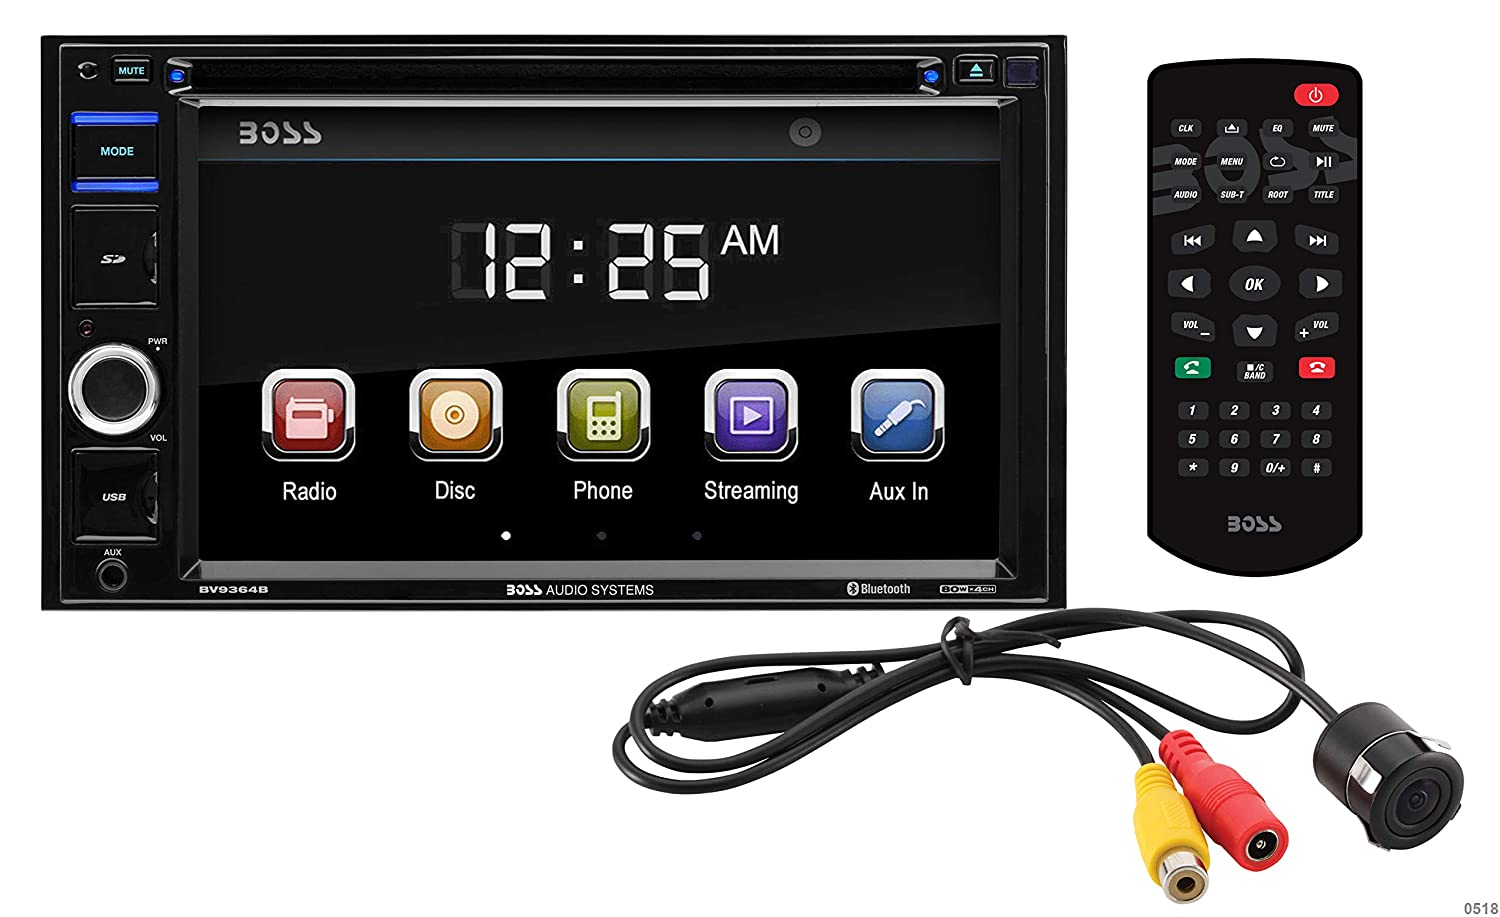 Boss Audio Bvb9364rc Double Din Touchscreen Bluetooth Radio Bv9364b Wiring Harness Dvd Cd Mp3 Usb Sd Am Fm Car Stereo 62 Inch Digital Lcd Monitor Wireless Remote